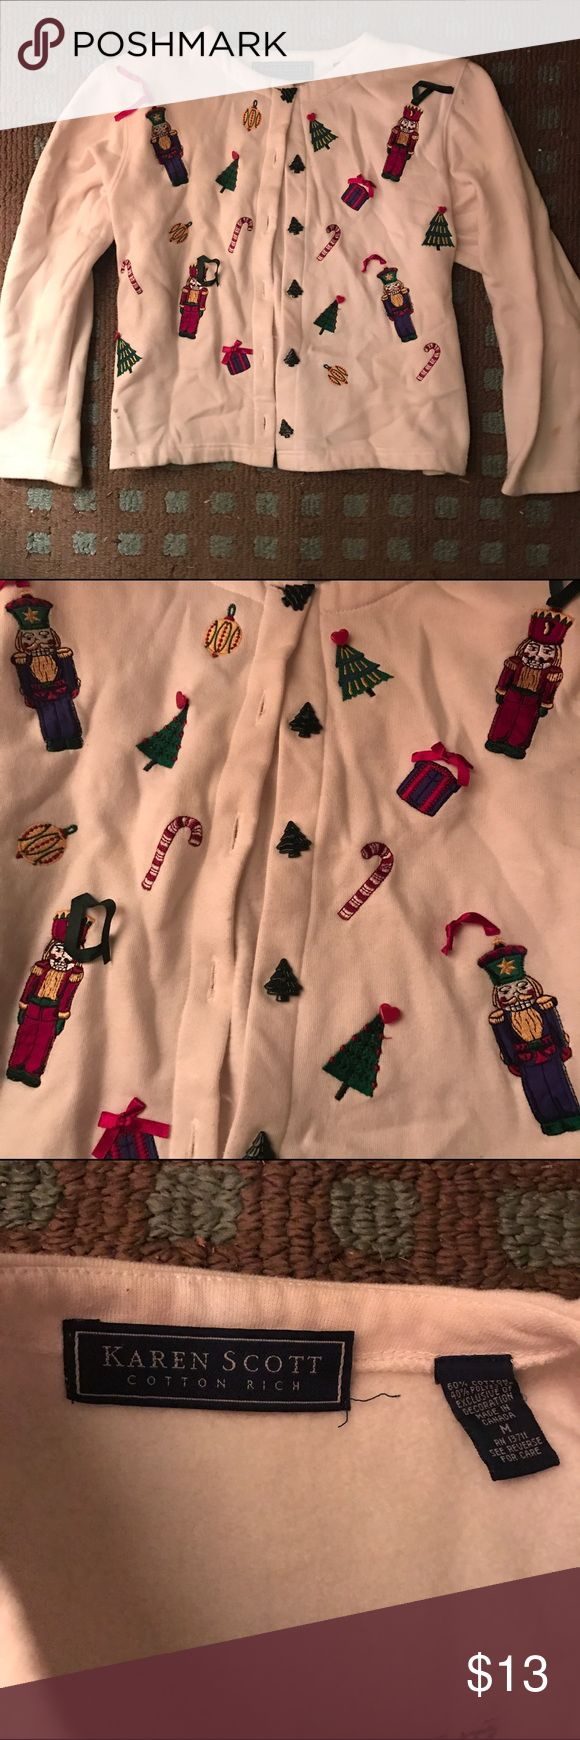 Vintage Karen Scott ugly Christmas sweater Vintage Karen Scott brand ugly Christmas sweater, only worn twice ever, once by my aunt yearssss ago and then once by me this past xmas. Has small shoulder pads and is actually quite cute on! Perfect for that ugly sweater party! Off white with decorations on front only. Buttons all the way down front are even little green xmas trees! One discoloration that I found on the sleeve from it sitting in storage, probably will wash out but I haven't…